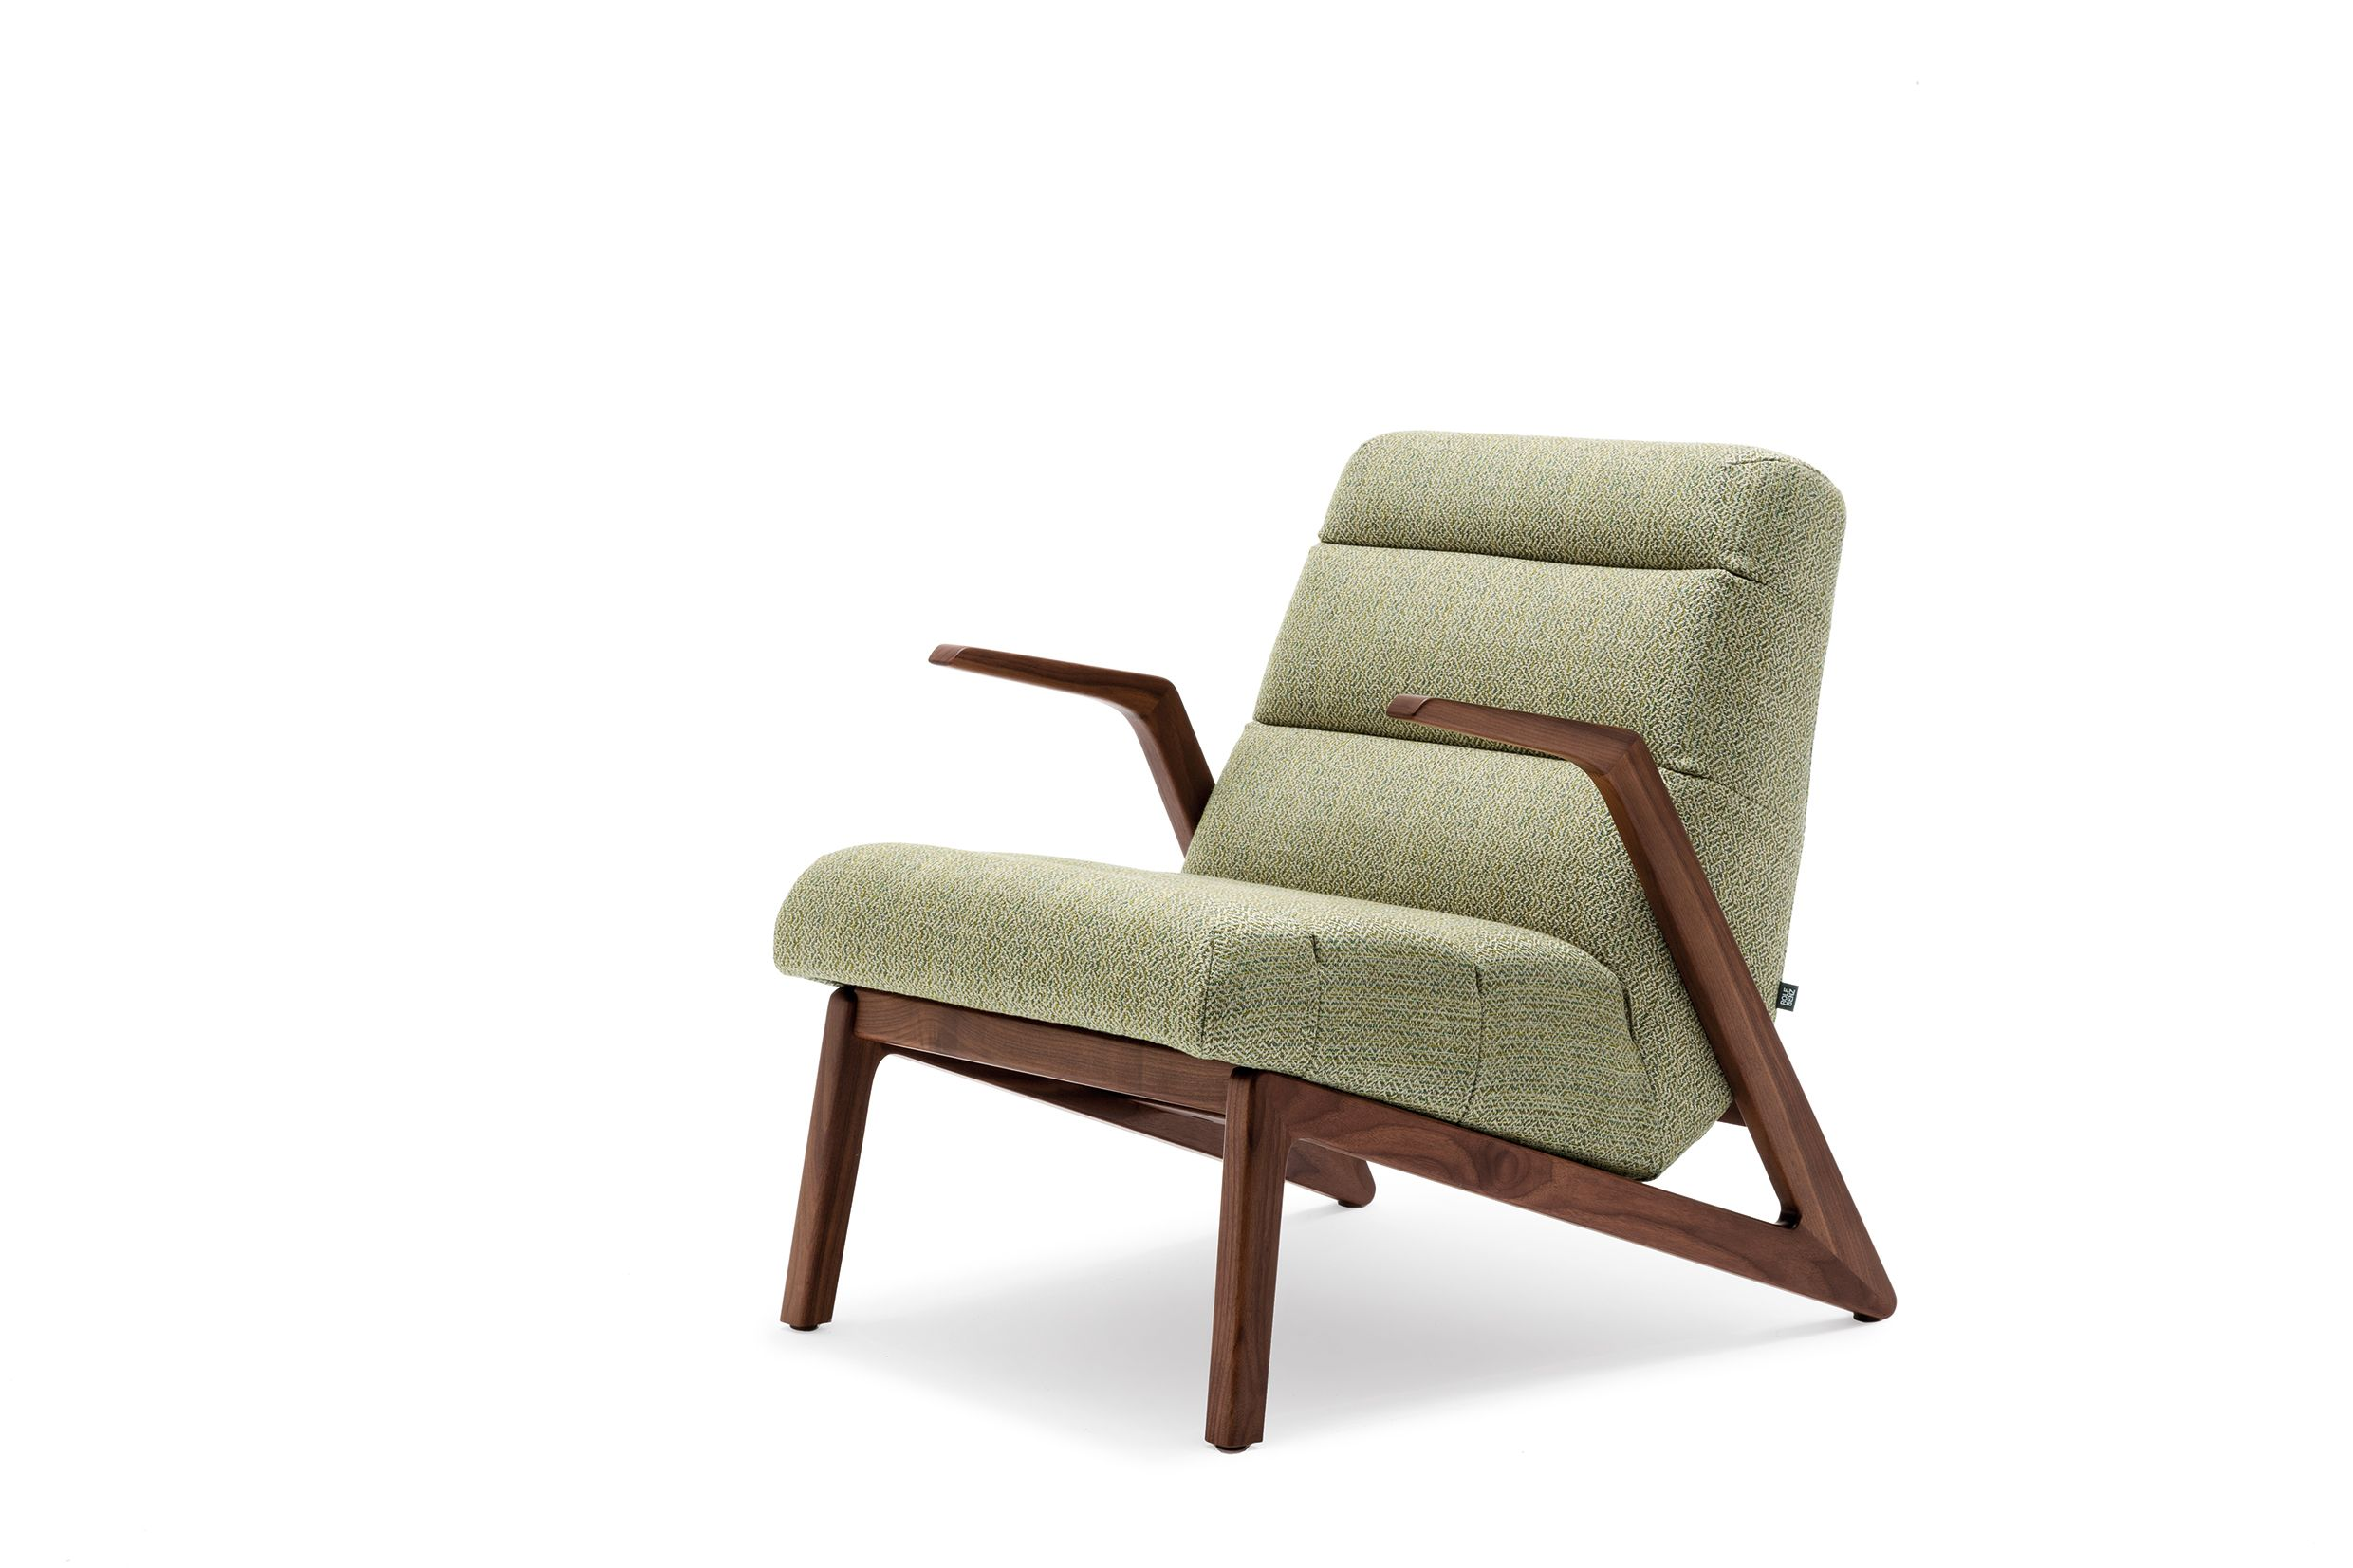 contemporary furniture armchairs and origami on pinterest armchairs seating rolf benz